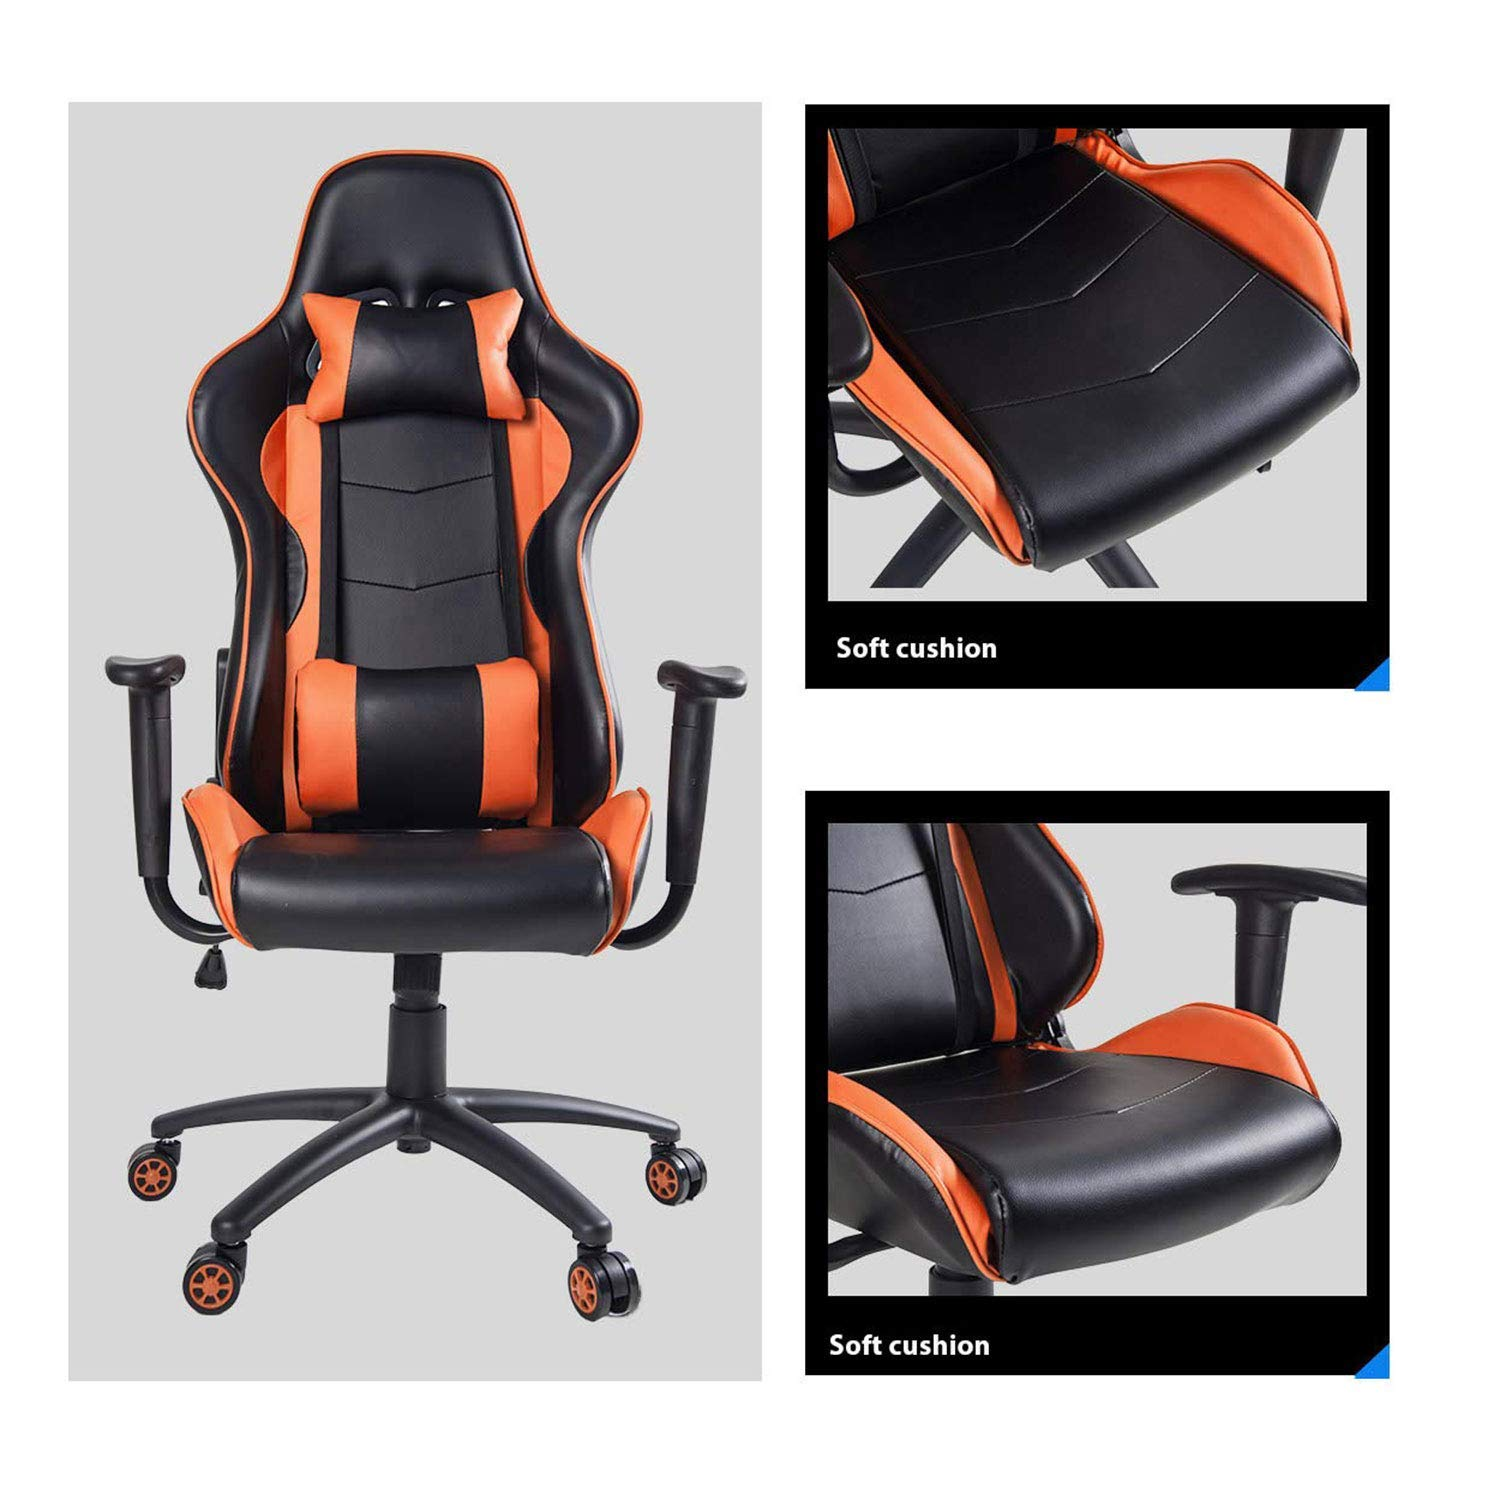 MOOSENG High Back Gaming Computer Desk Adjustable Swivel Office Racing Chair with Lumbar Support and Headrest,Orange